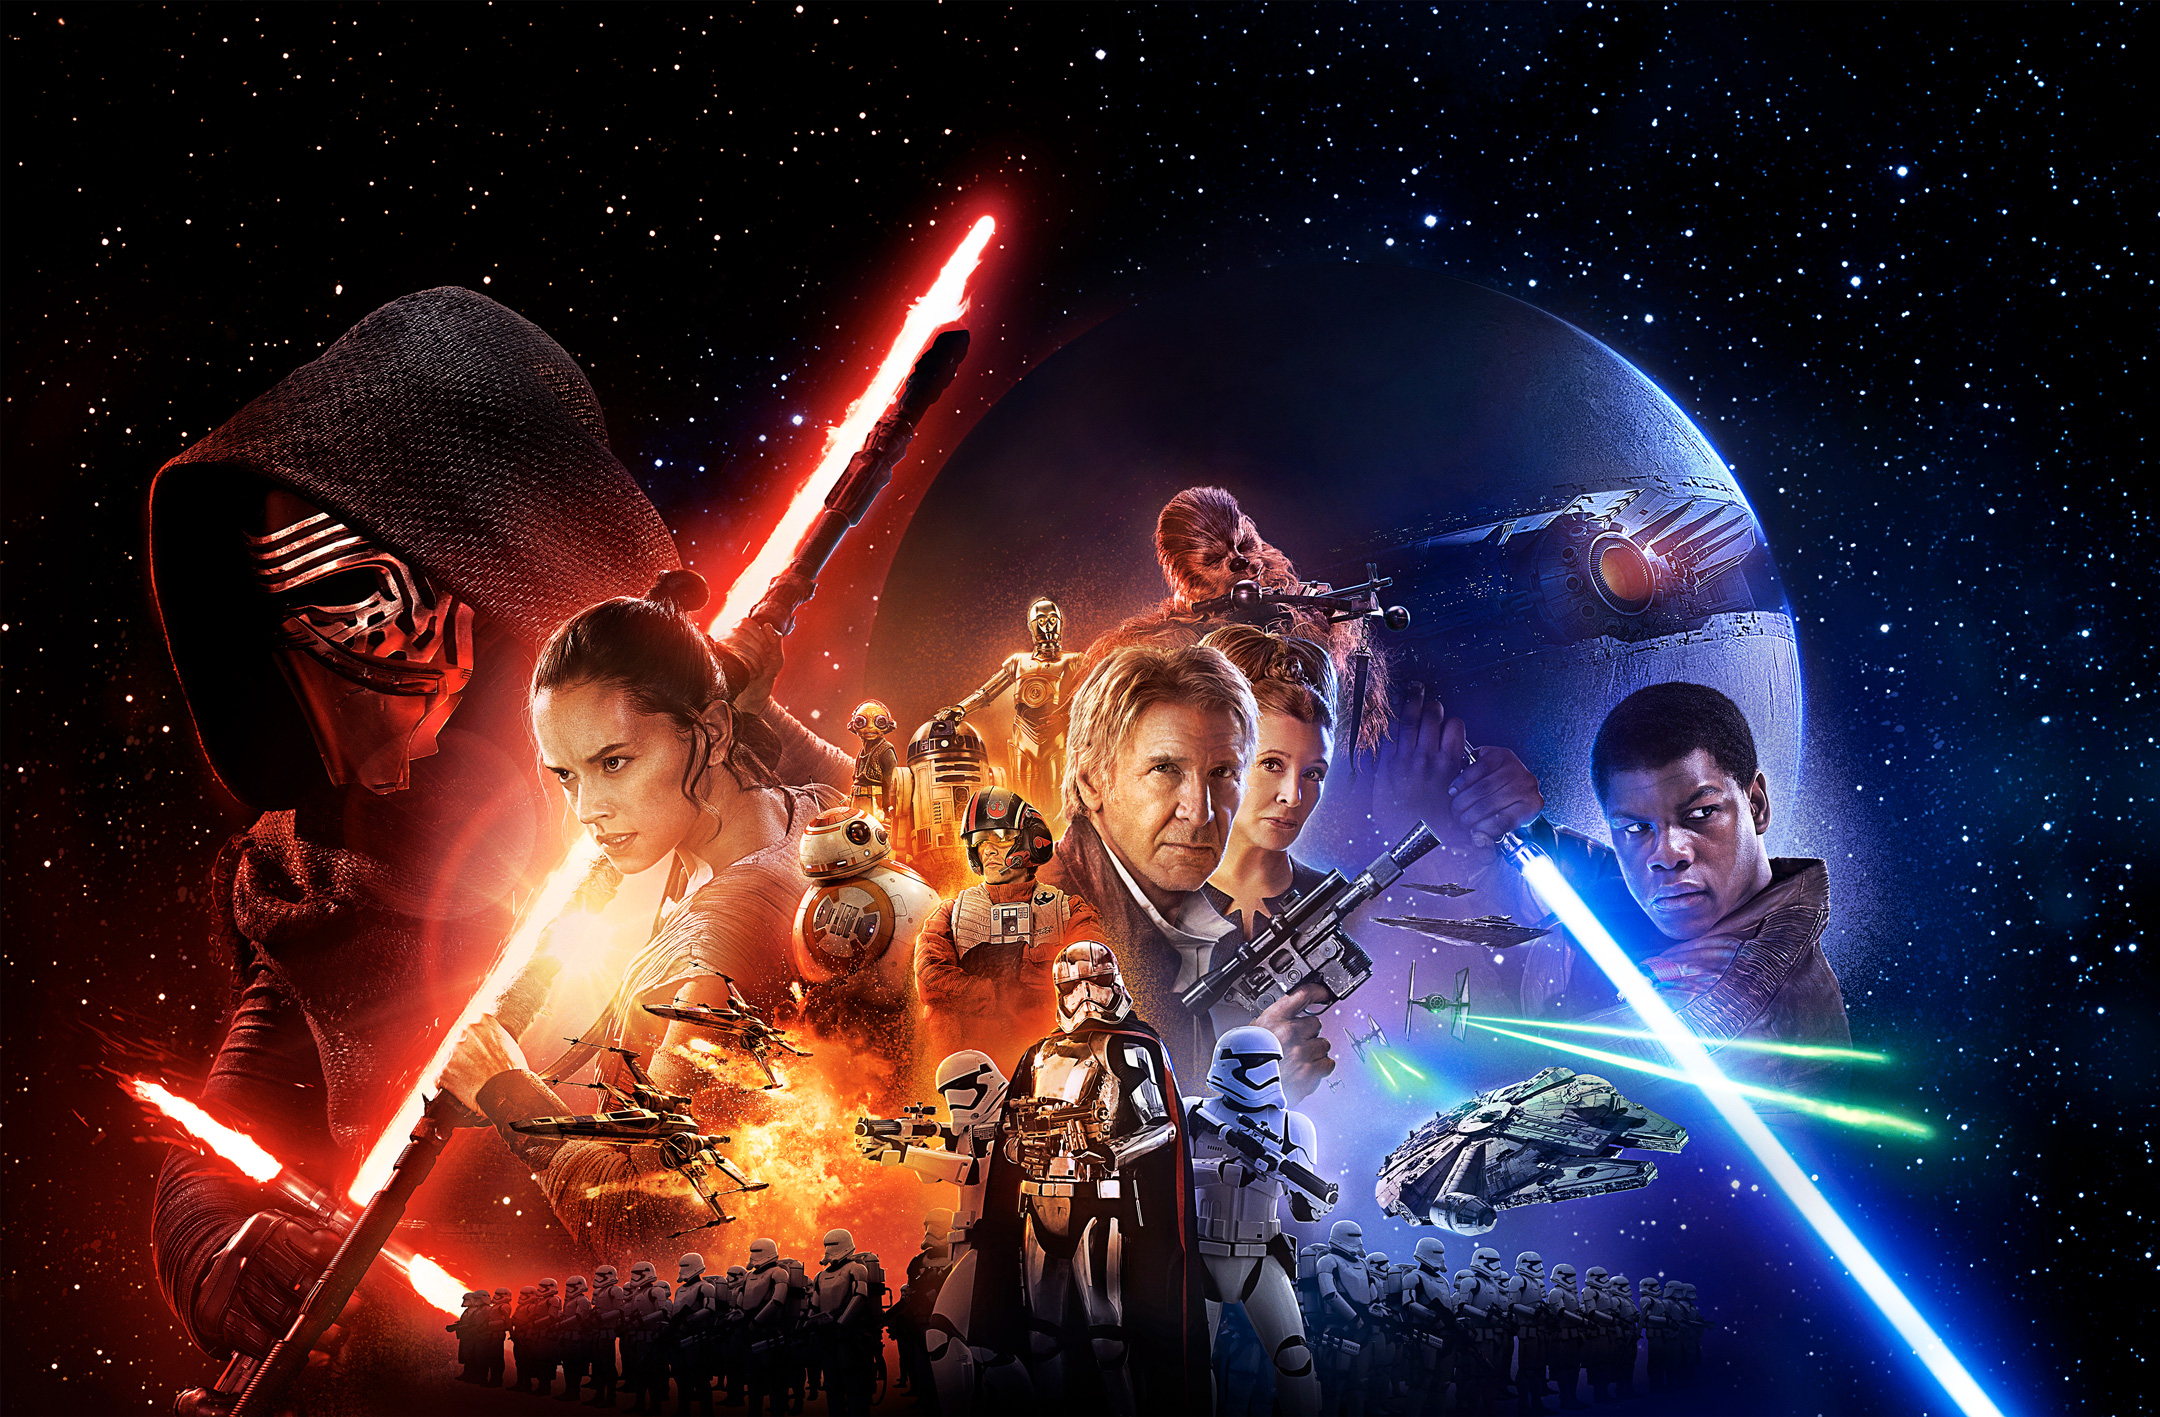 tfa_poster_wide_header